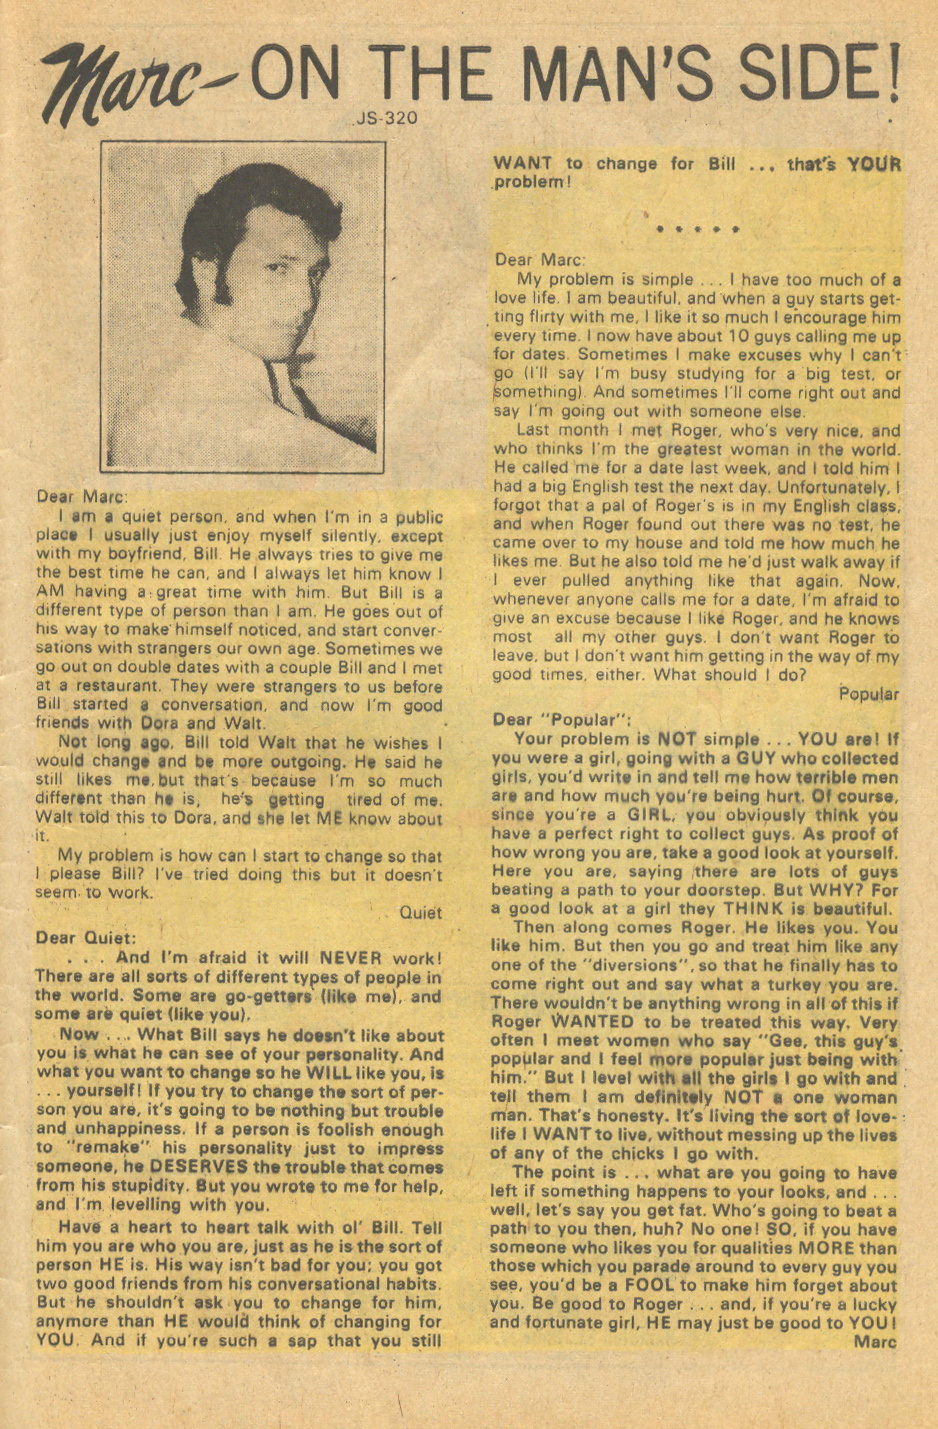 Original comic book advice page romance comics history Marc on the Man's Side